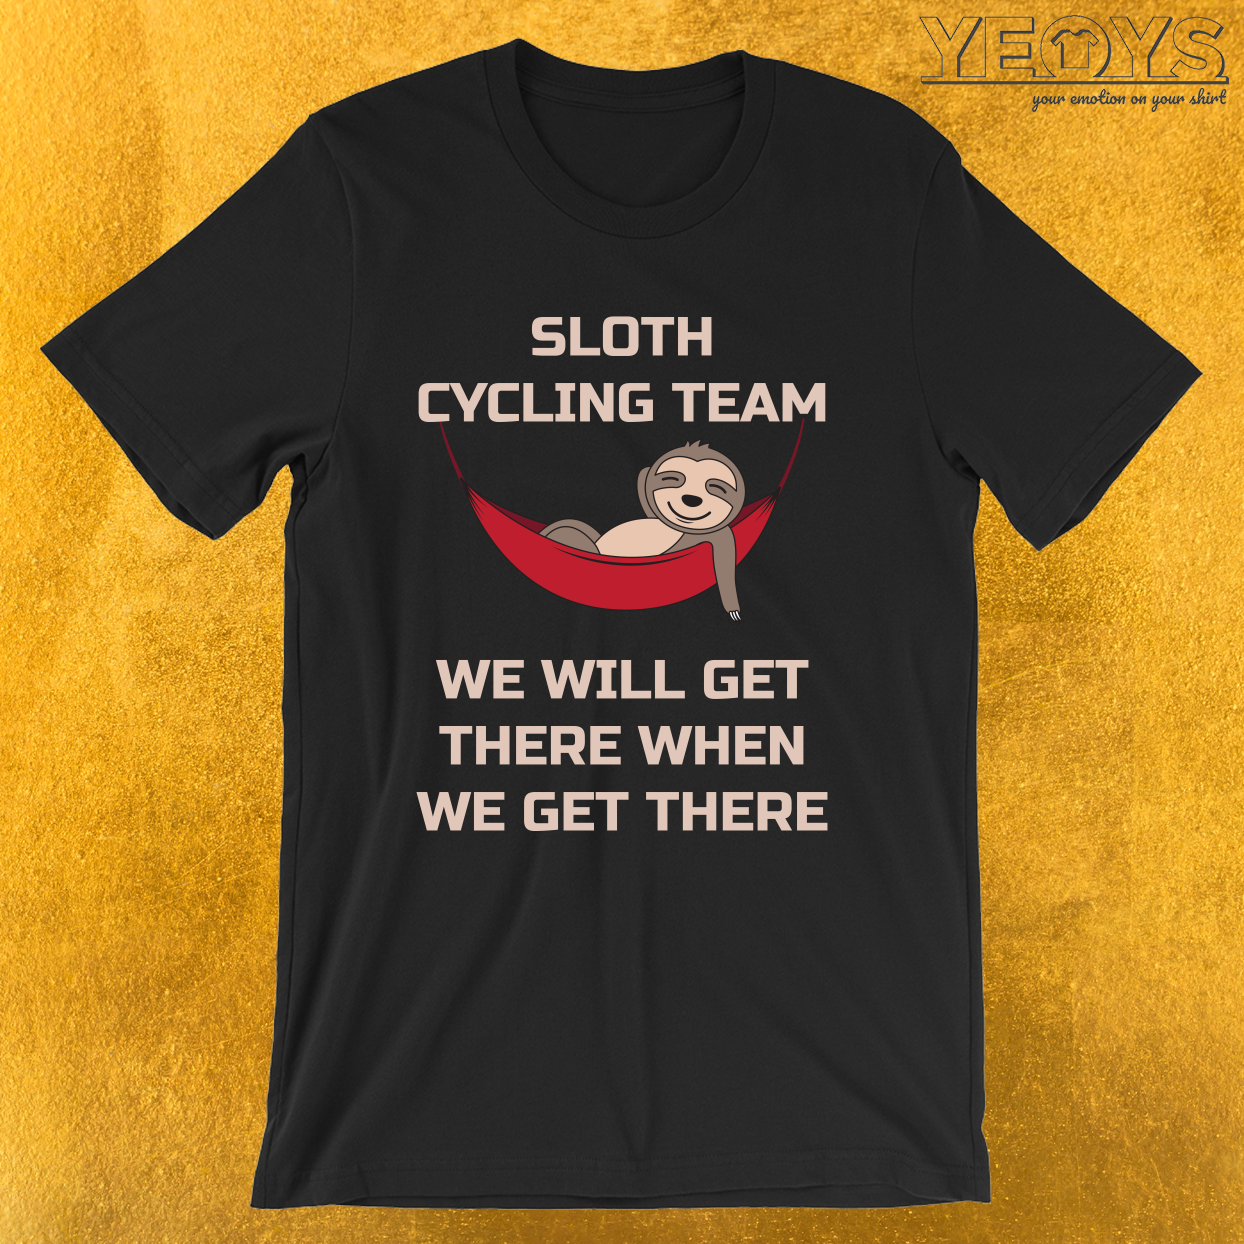 We Will Get There When We Get There – Sloth Cycling Team Tee